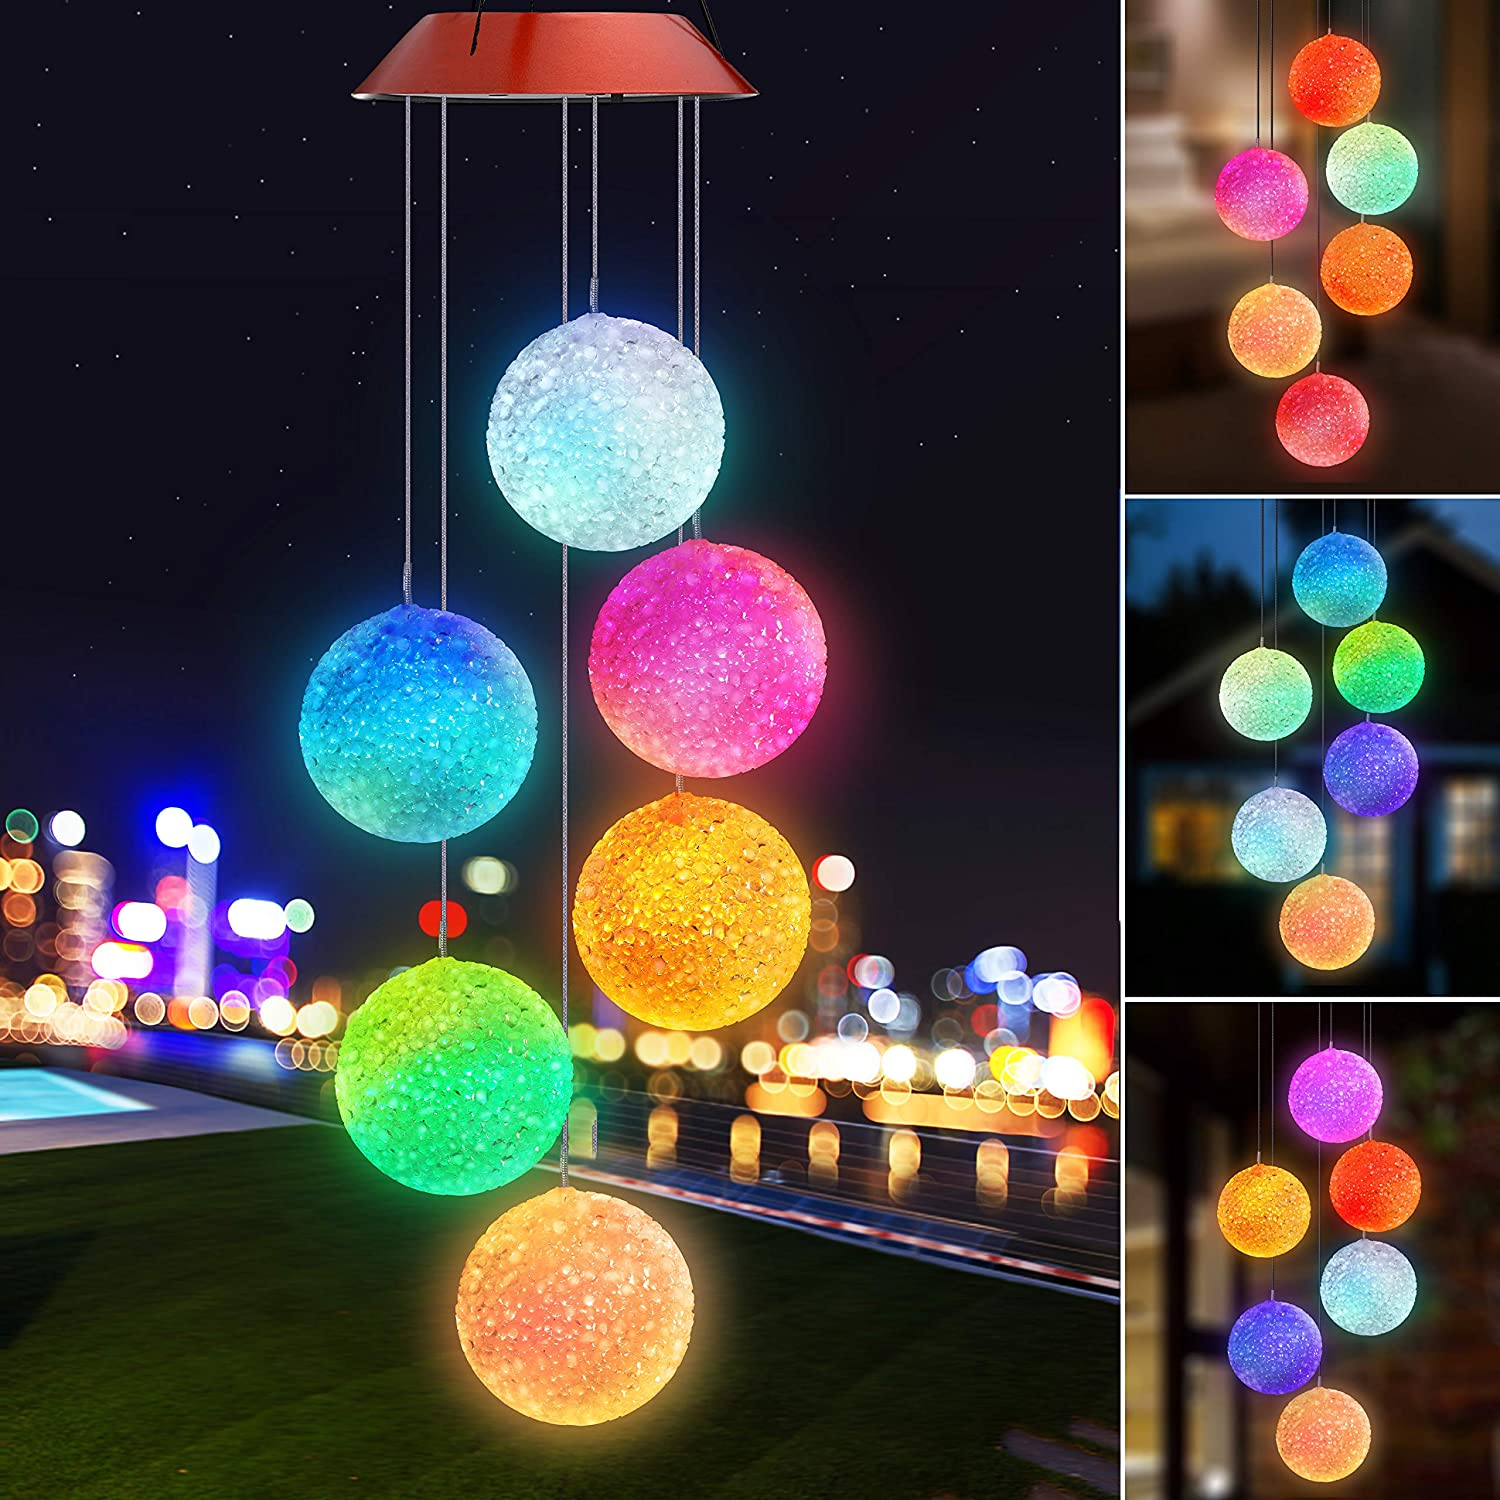 Topspeeder Wind Chimes Crystal Ball Solar Wind Chimes Color Changing Outdoor Waterproof Wind Mobile Led Solar Powered Wind Chimes Outdoor Decor Yard Decorations Copper Board Crystal Ball Garden Outdoor